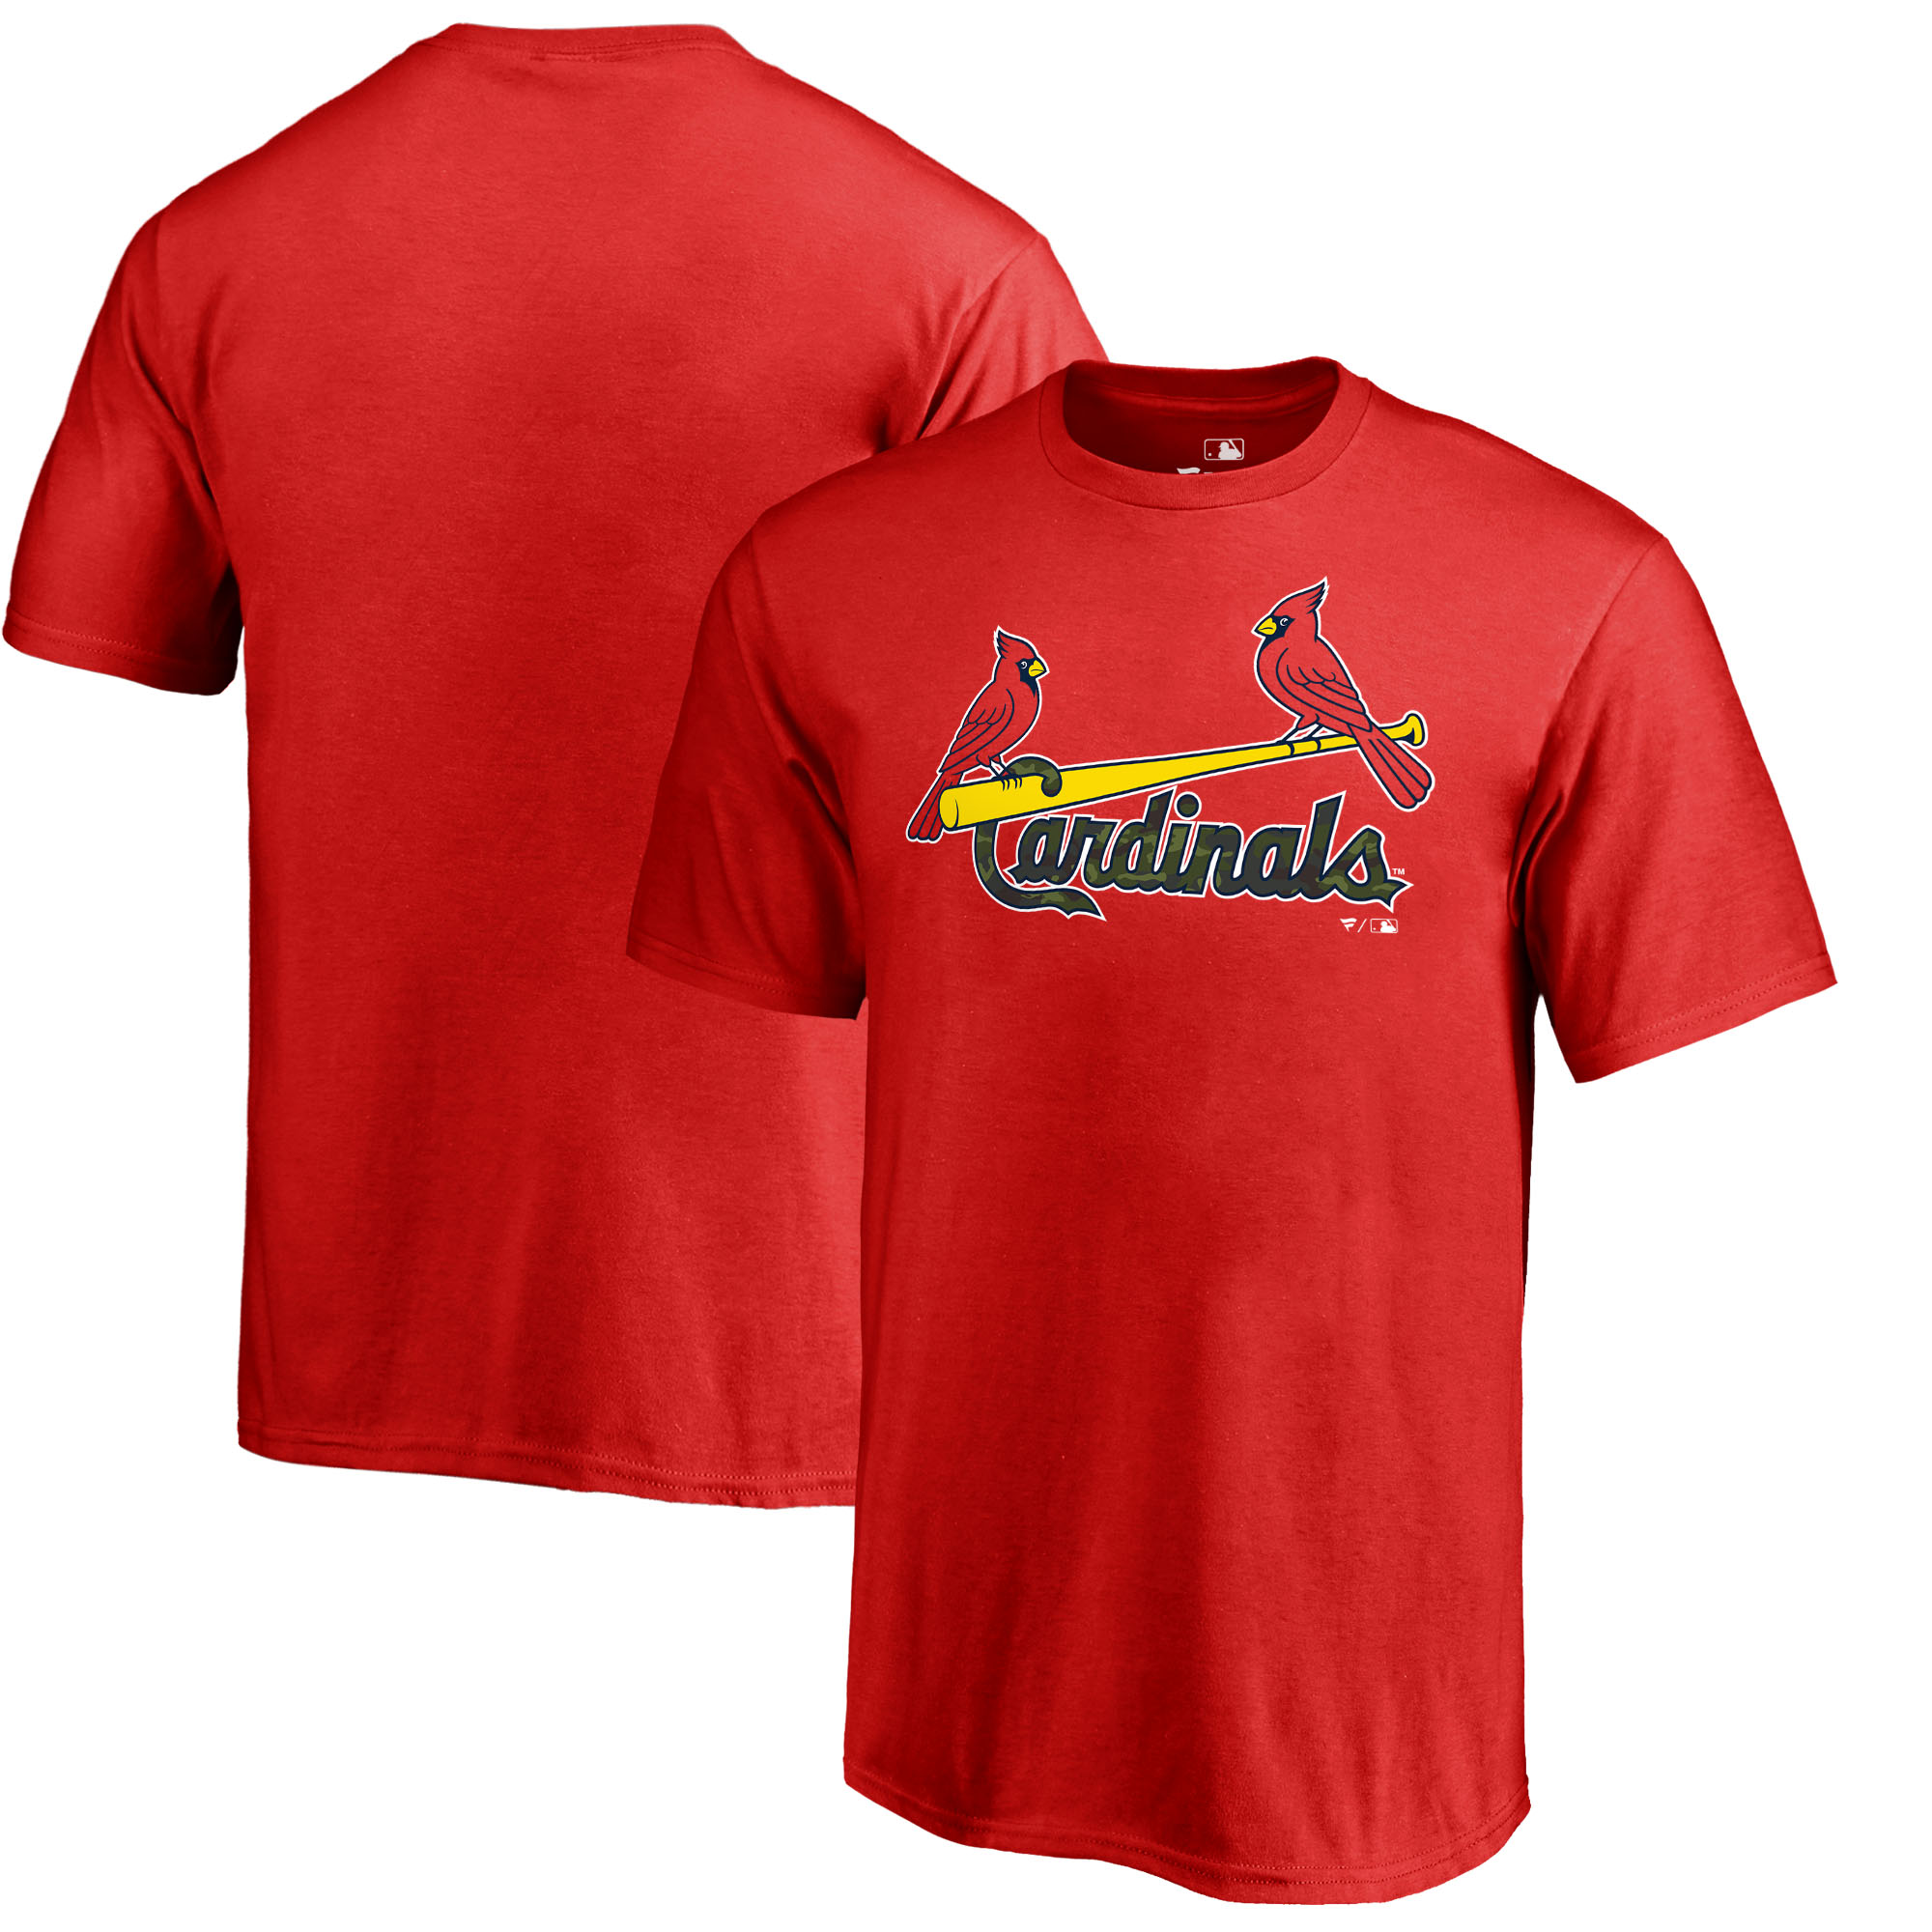 St. Louis Cardinals Fanatics Branded Youth Memorial Wordmark T-Shirt - Red